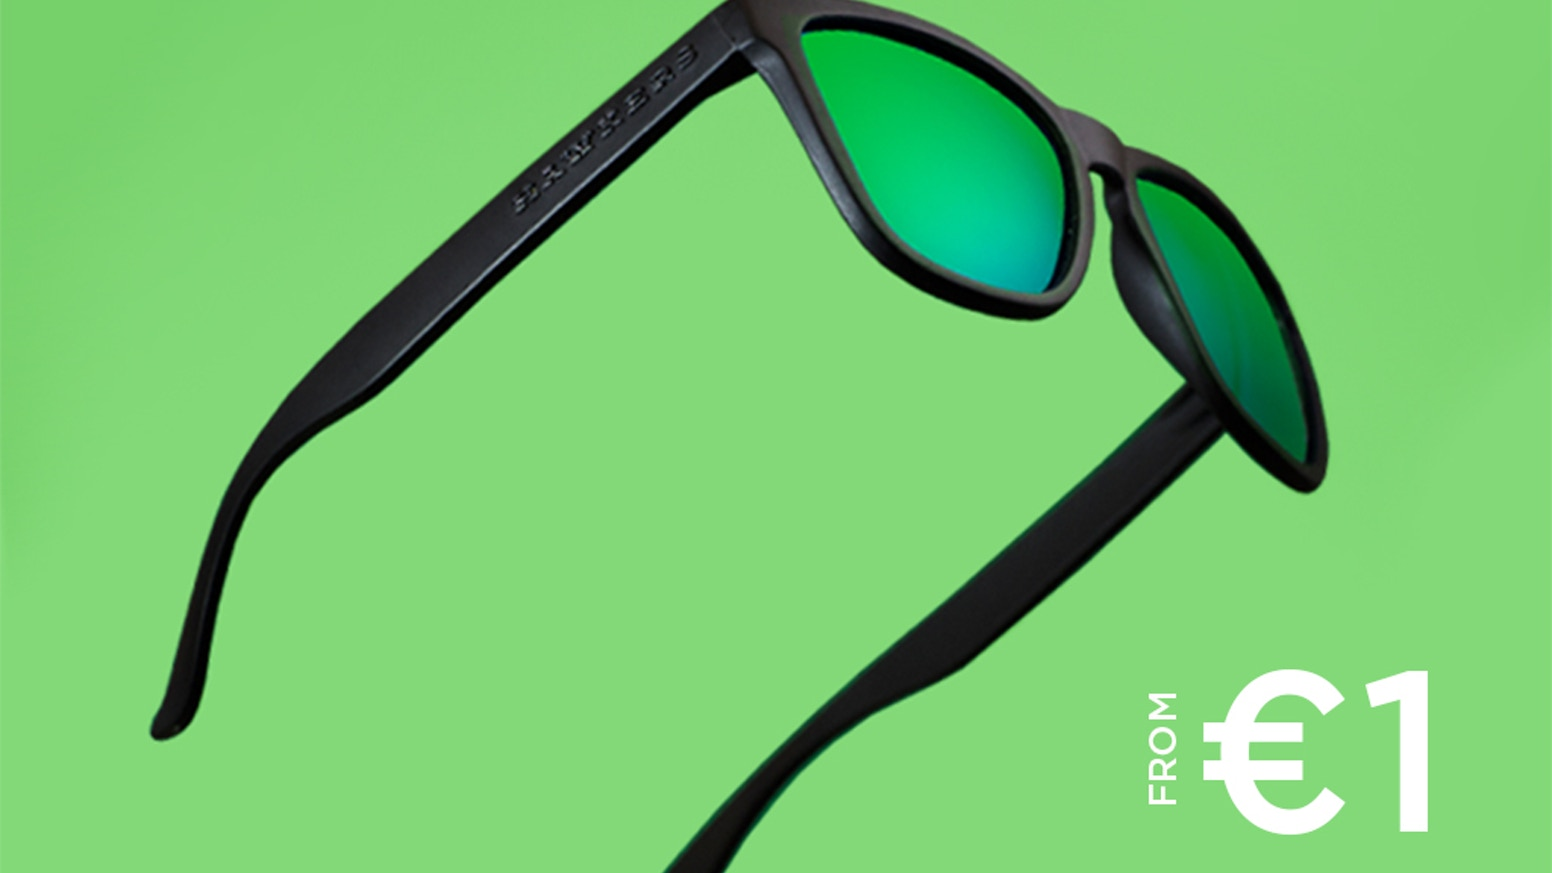 b2d1397b366c The Sunglasses That Will Change The Business Forever by Hawkers Co ...